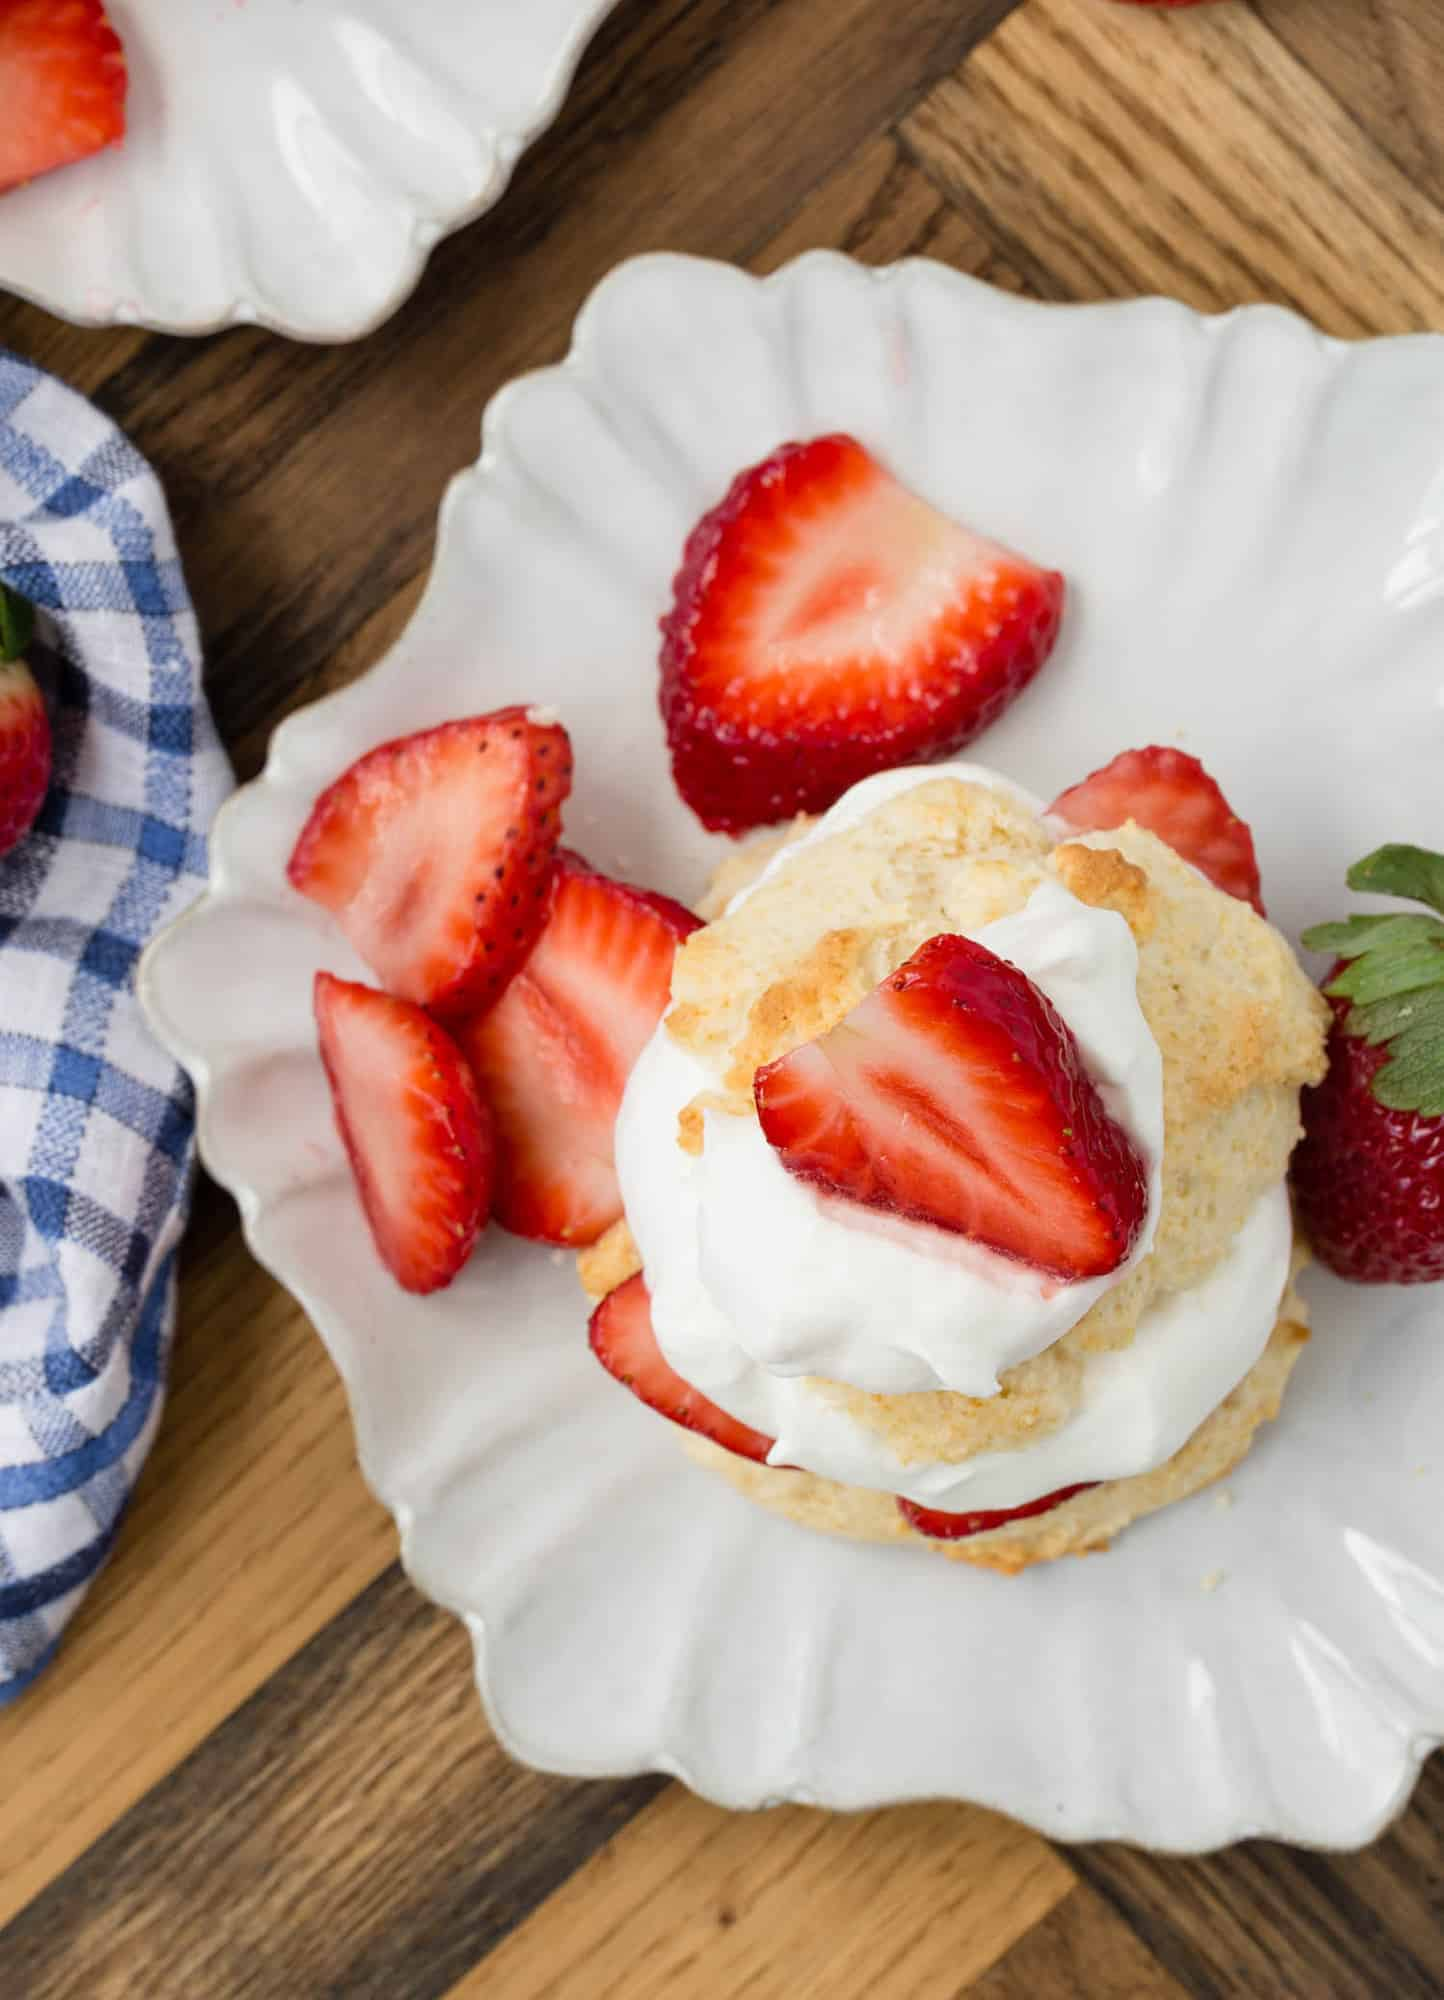 Overhead view of strawberry shortcake on a white plate.